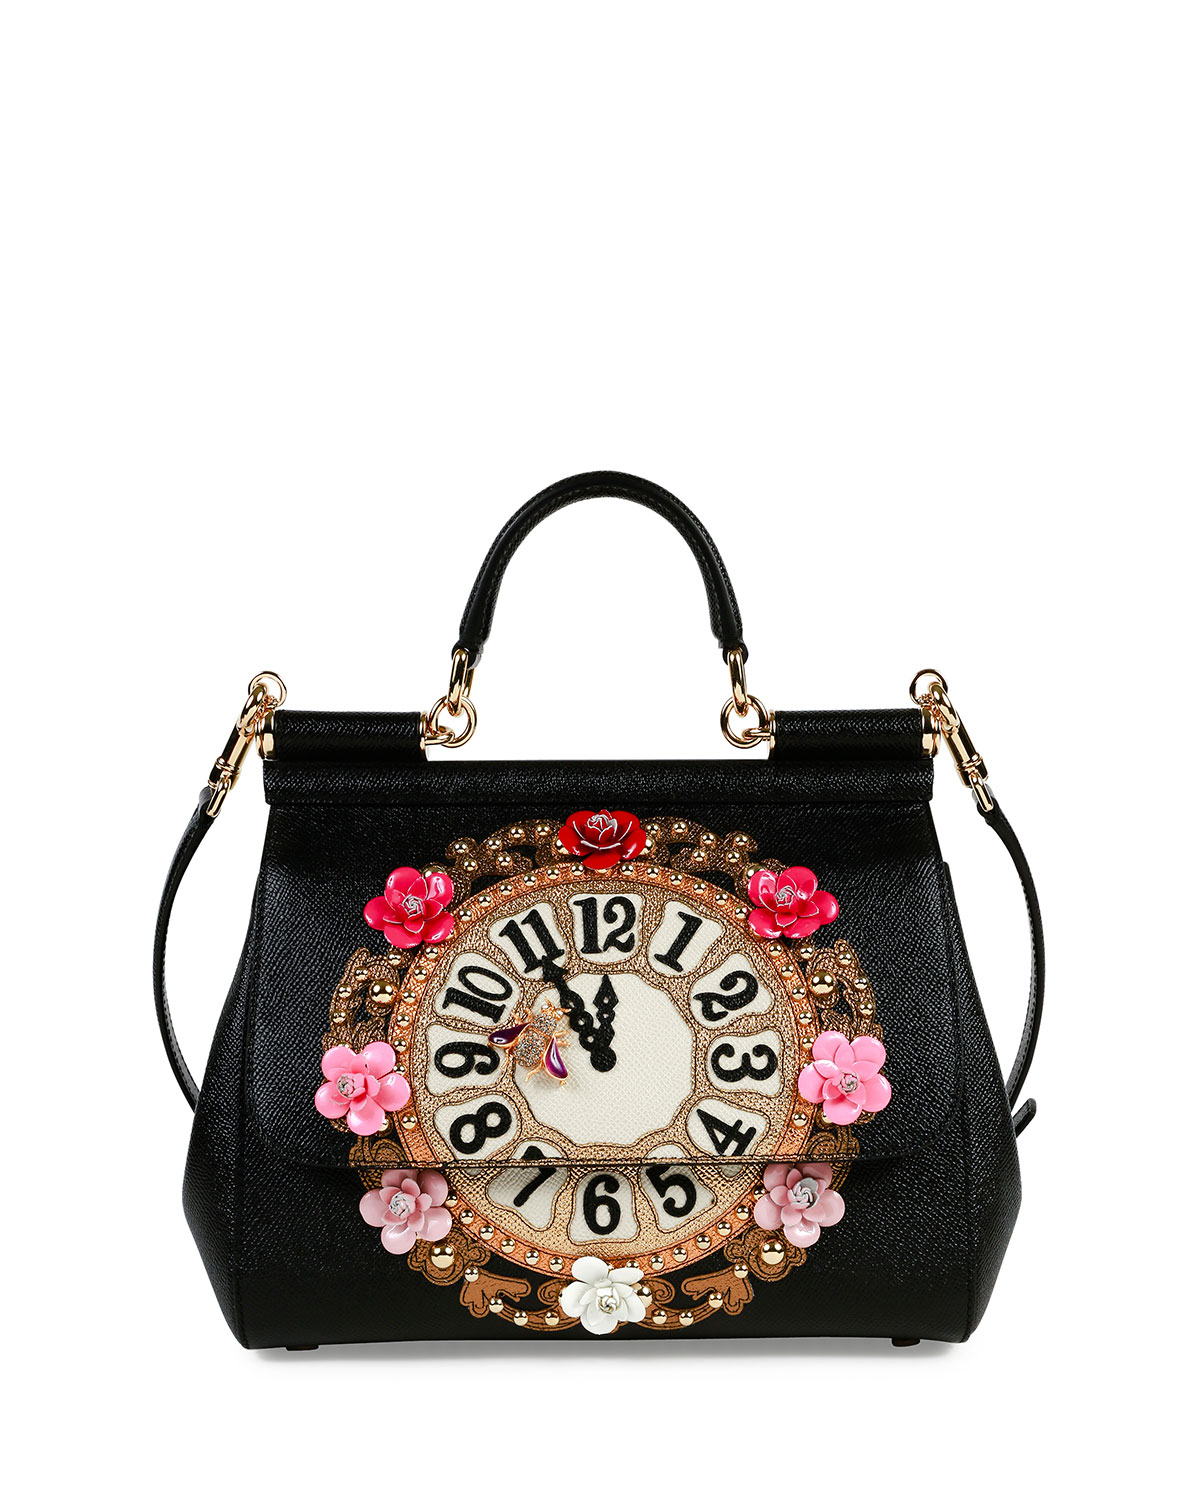 e13bb5b697 Dolce   Gabbana Miss Sicily Medium Leather Clock Satchel Bag